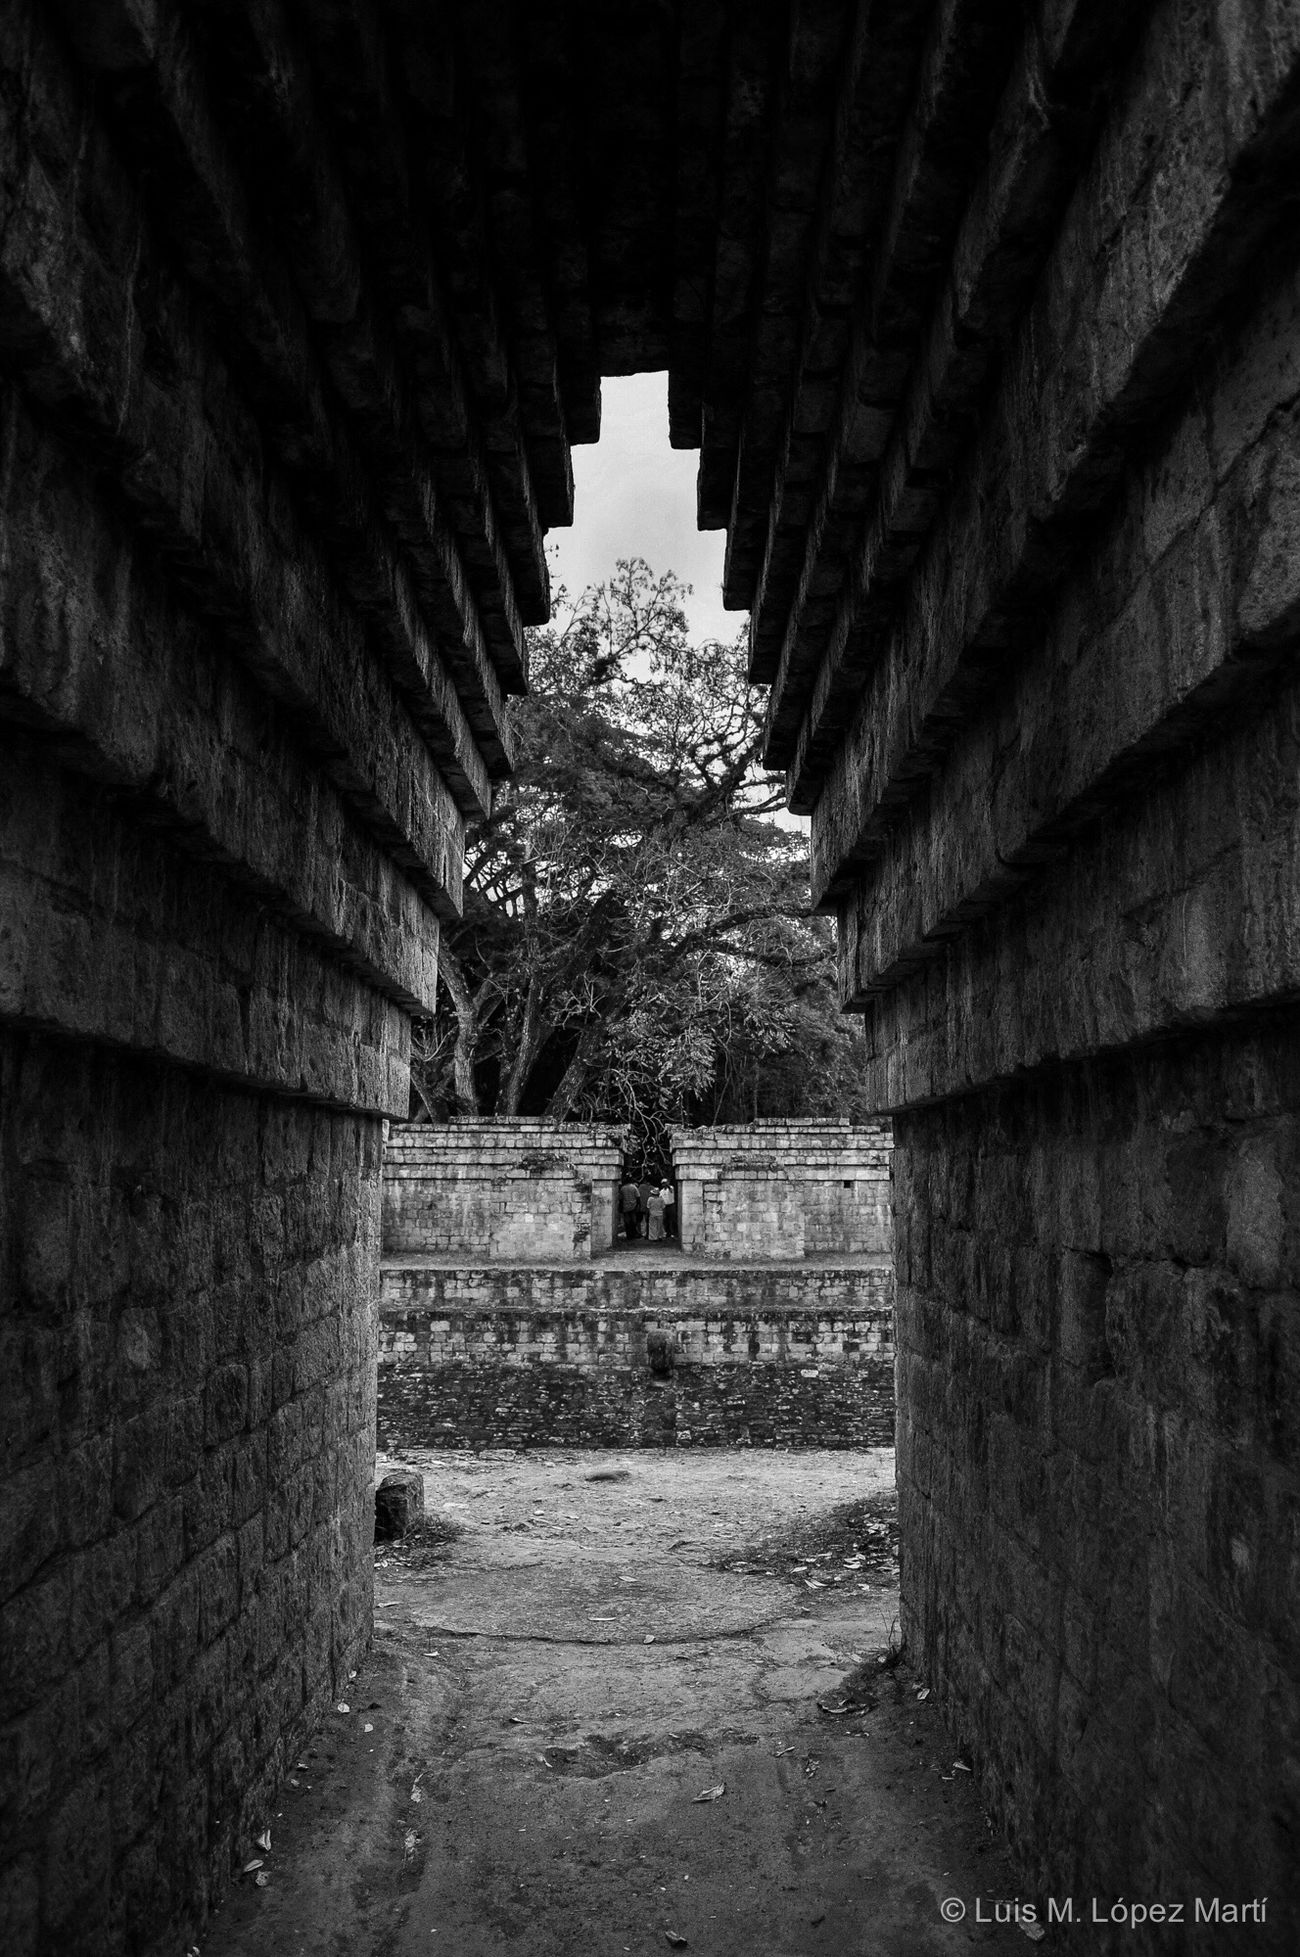 Copán Ruinas, Honduras Architecture Archeology Archeological Site Lifestyles Life Tranquility Photography Photo Nikon Nikonphotography Blackandwhite Black And White Ancient Ancient Civilization Black & White Blackandwhite Photography Light And Shadow Black And White Photography Monochrome Monochrome Photography Travel Travel Destinations History Architecture